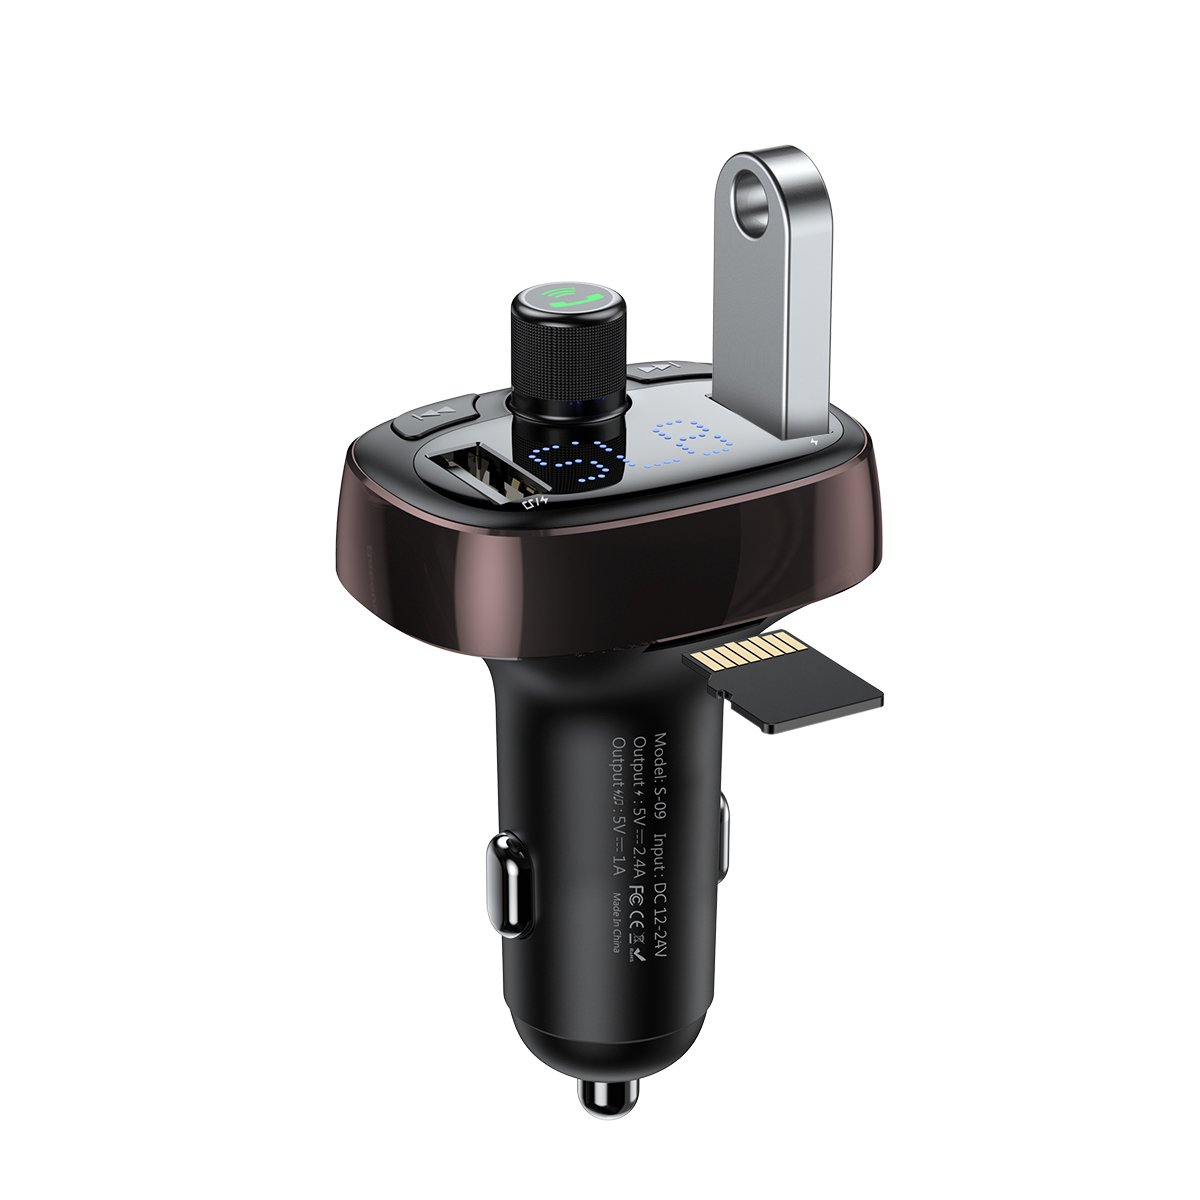 Baseus T typed S-09A wireless MP3 car charger(Standard edition)Black - TechBeans Inc.